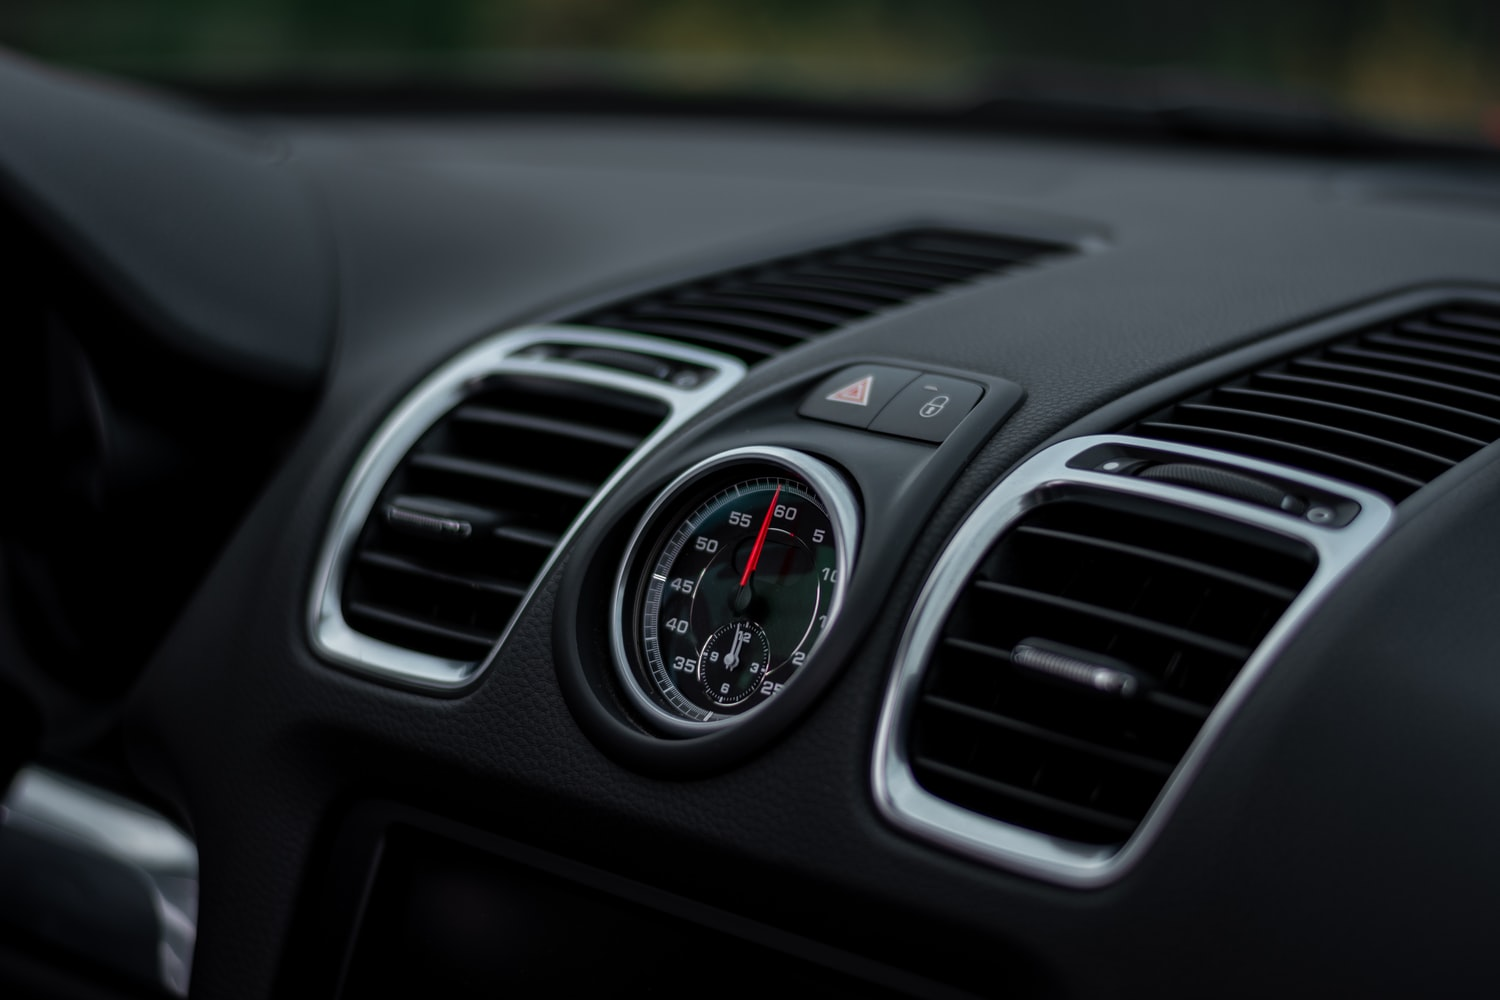 Car air conditioning service near me at Coopers Plains